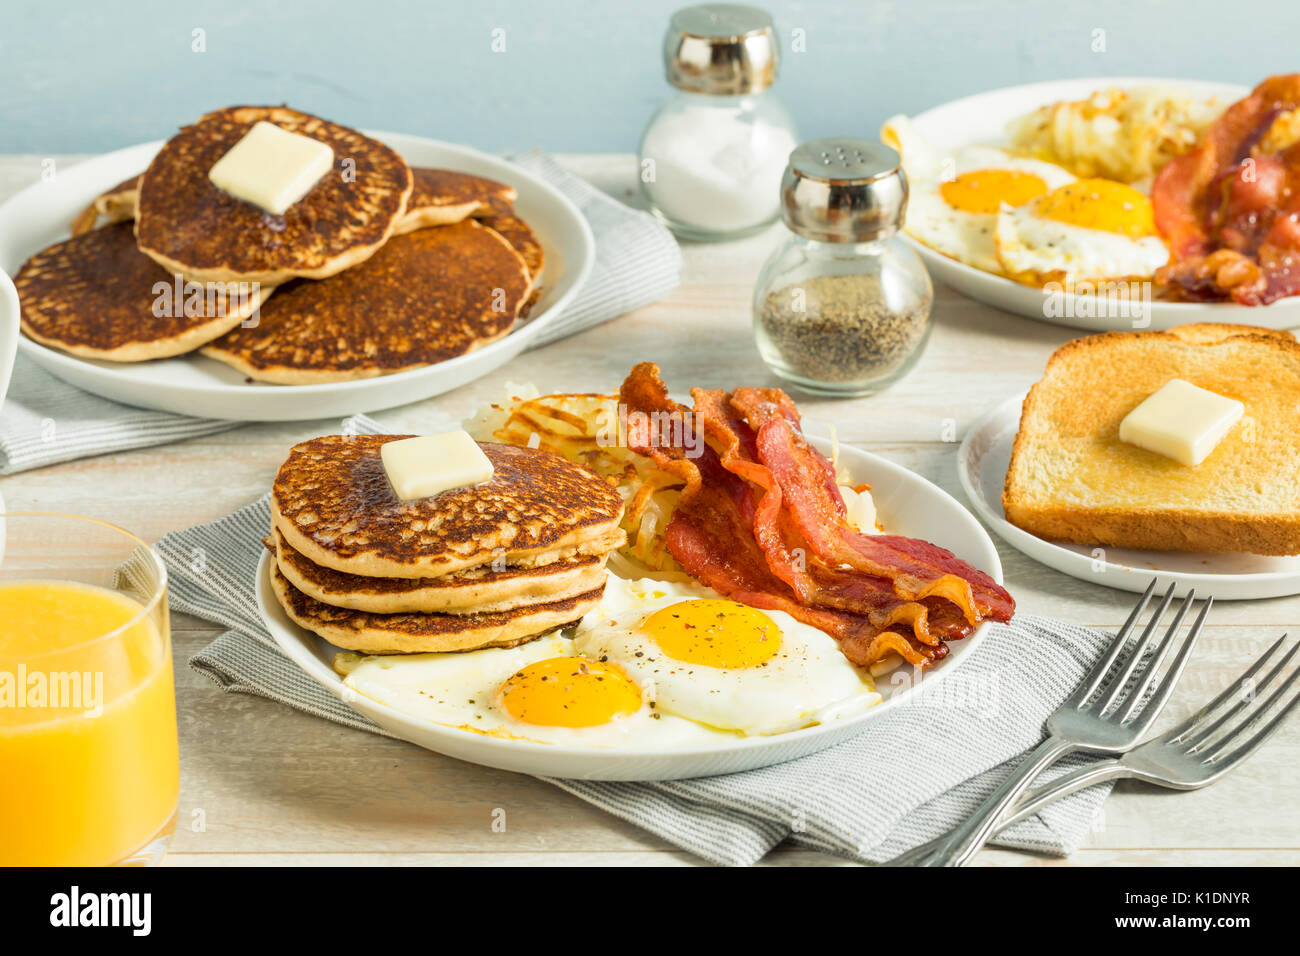 Healthy Full American Breakfast with Eggs Bacon and Pancakes Stock Photo